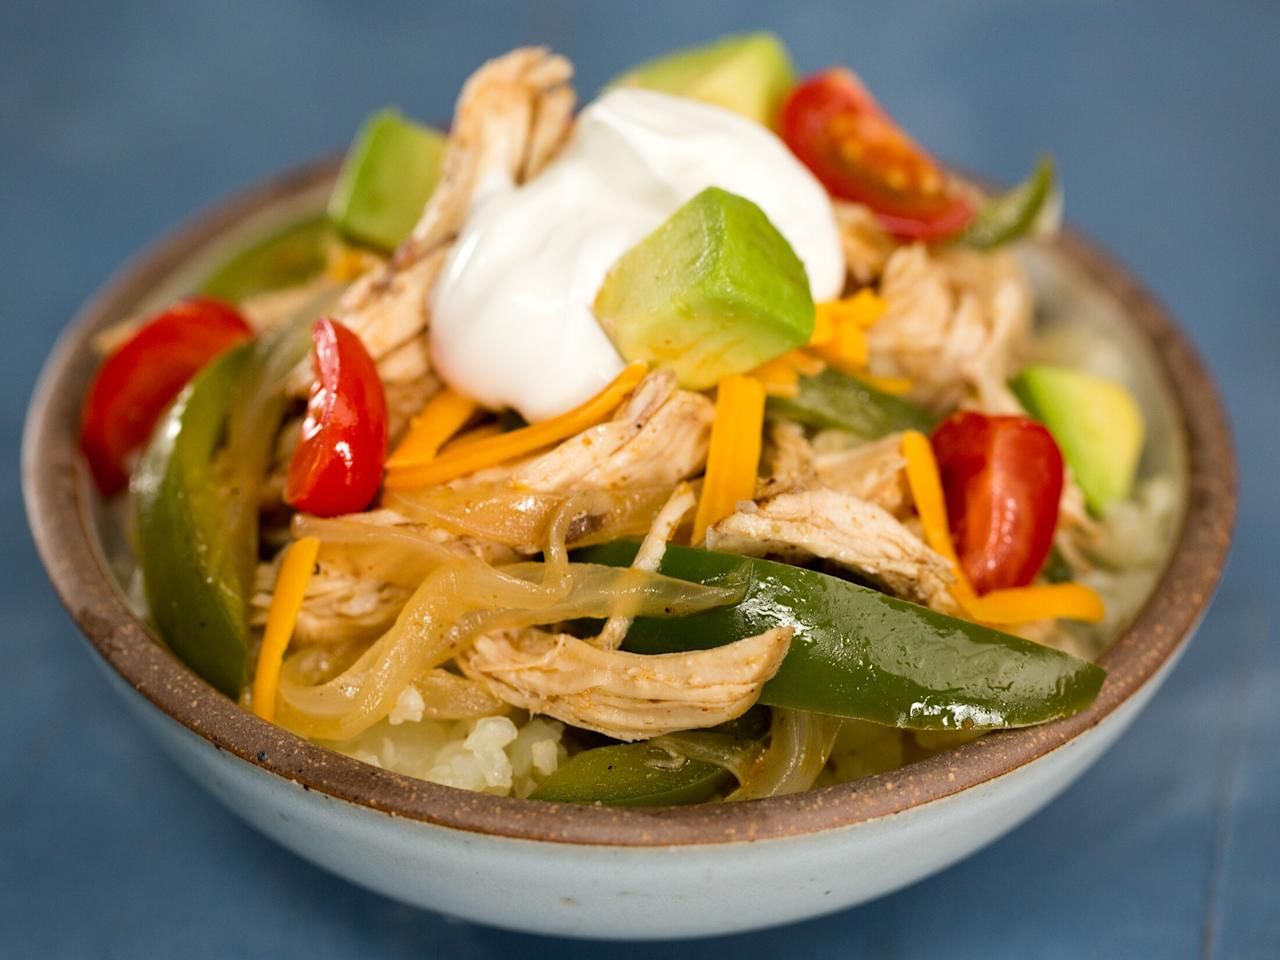 """<p>This keto-approved take on fajitas is a super satisfying low-carb meal. The chicken shreds off the bone easily, while the veggies have a slight crunch and the broth is light and flavorful. It feels indulgent, but you're not breaking any rules. </p> <p><a href=""""https://www.myrecipes.com/recipe/instant-pot-keto-fajita-bowls"""">Instant Pot Keto Chicken Fajita Bowls&nbsp; Recipe</a></p>"""